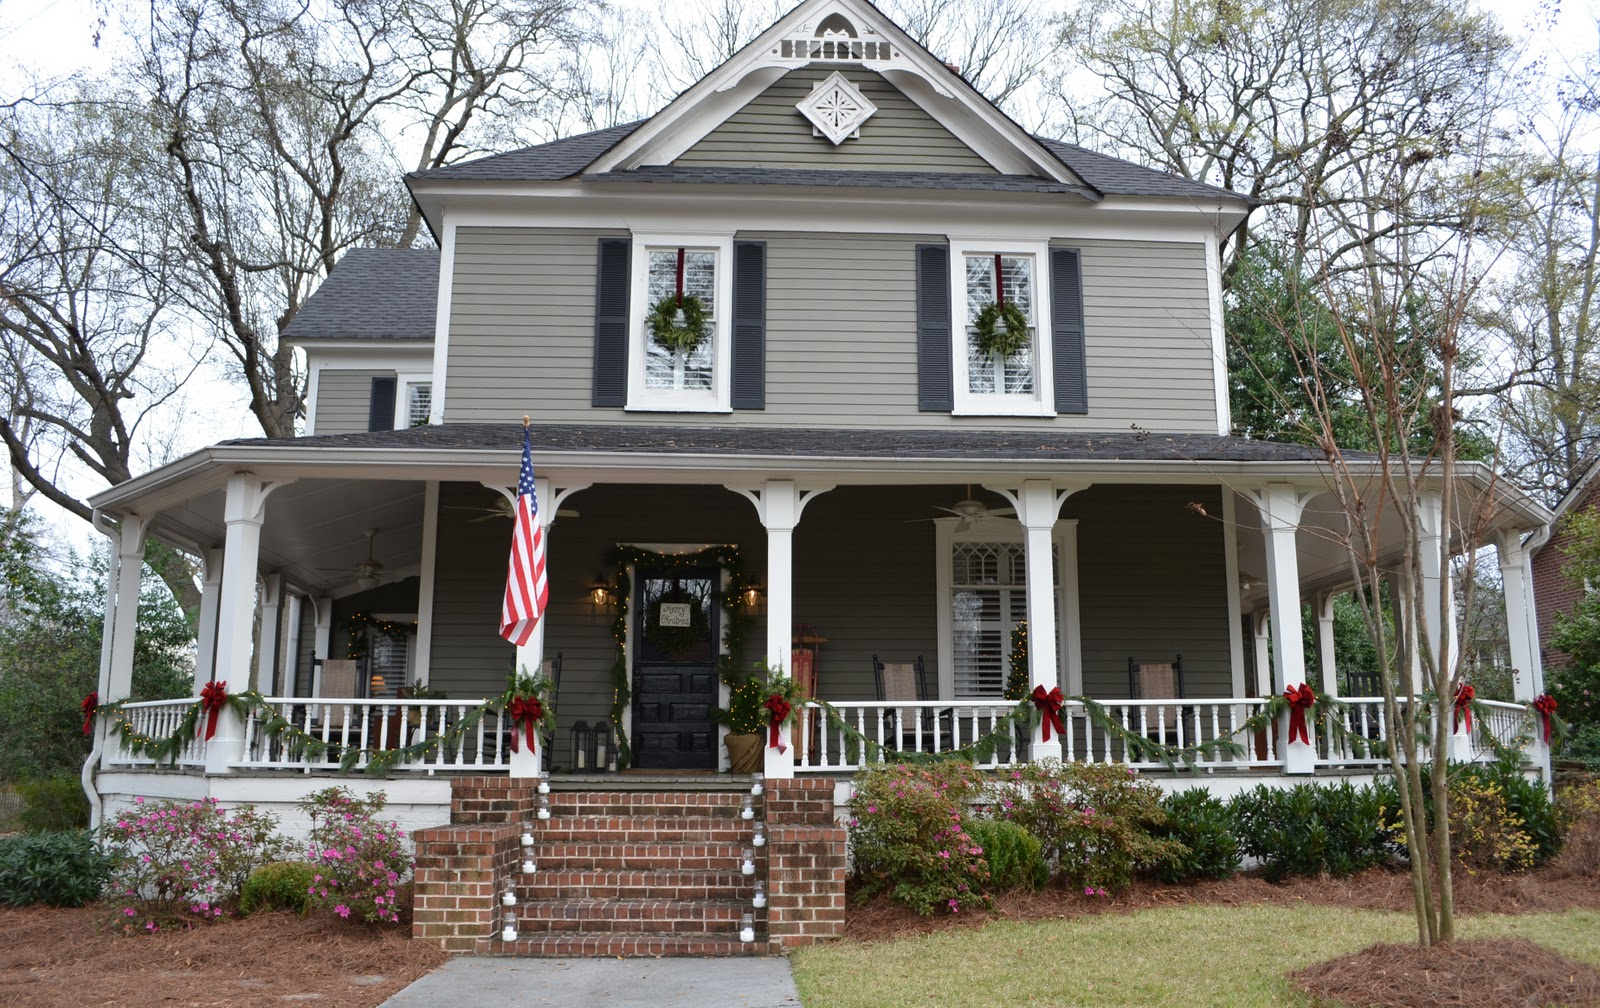 Marietta, GA Real Estate Insights Marietta is located in central Cobb County, Georgia, and is the county's seat and largest city. Your taste buds will never get bored in Marietta, with a multitude of excellent restaurants nearby offering food from around the world, such as Caribbean, pizza and Mexican.